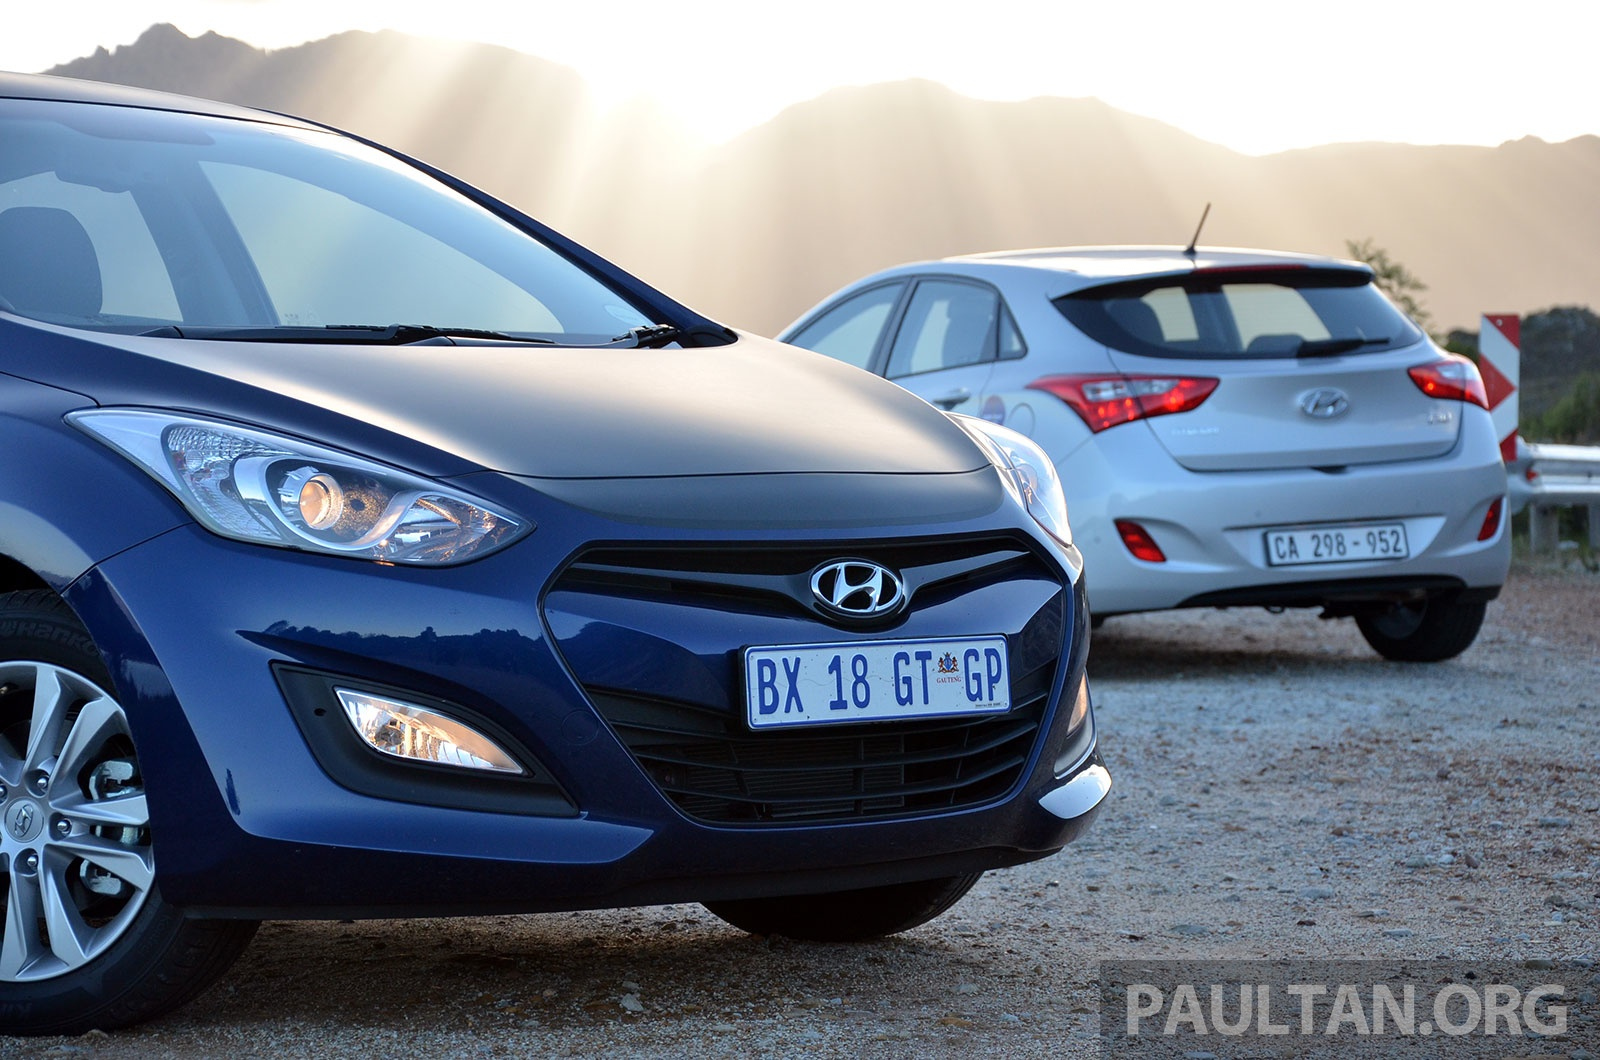 Hyundai i30 Cape Town Round rock Free Download Image Of